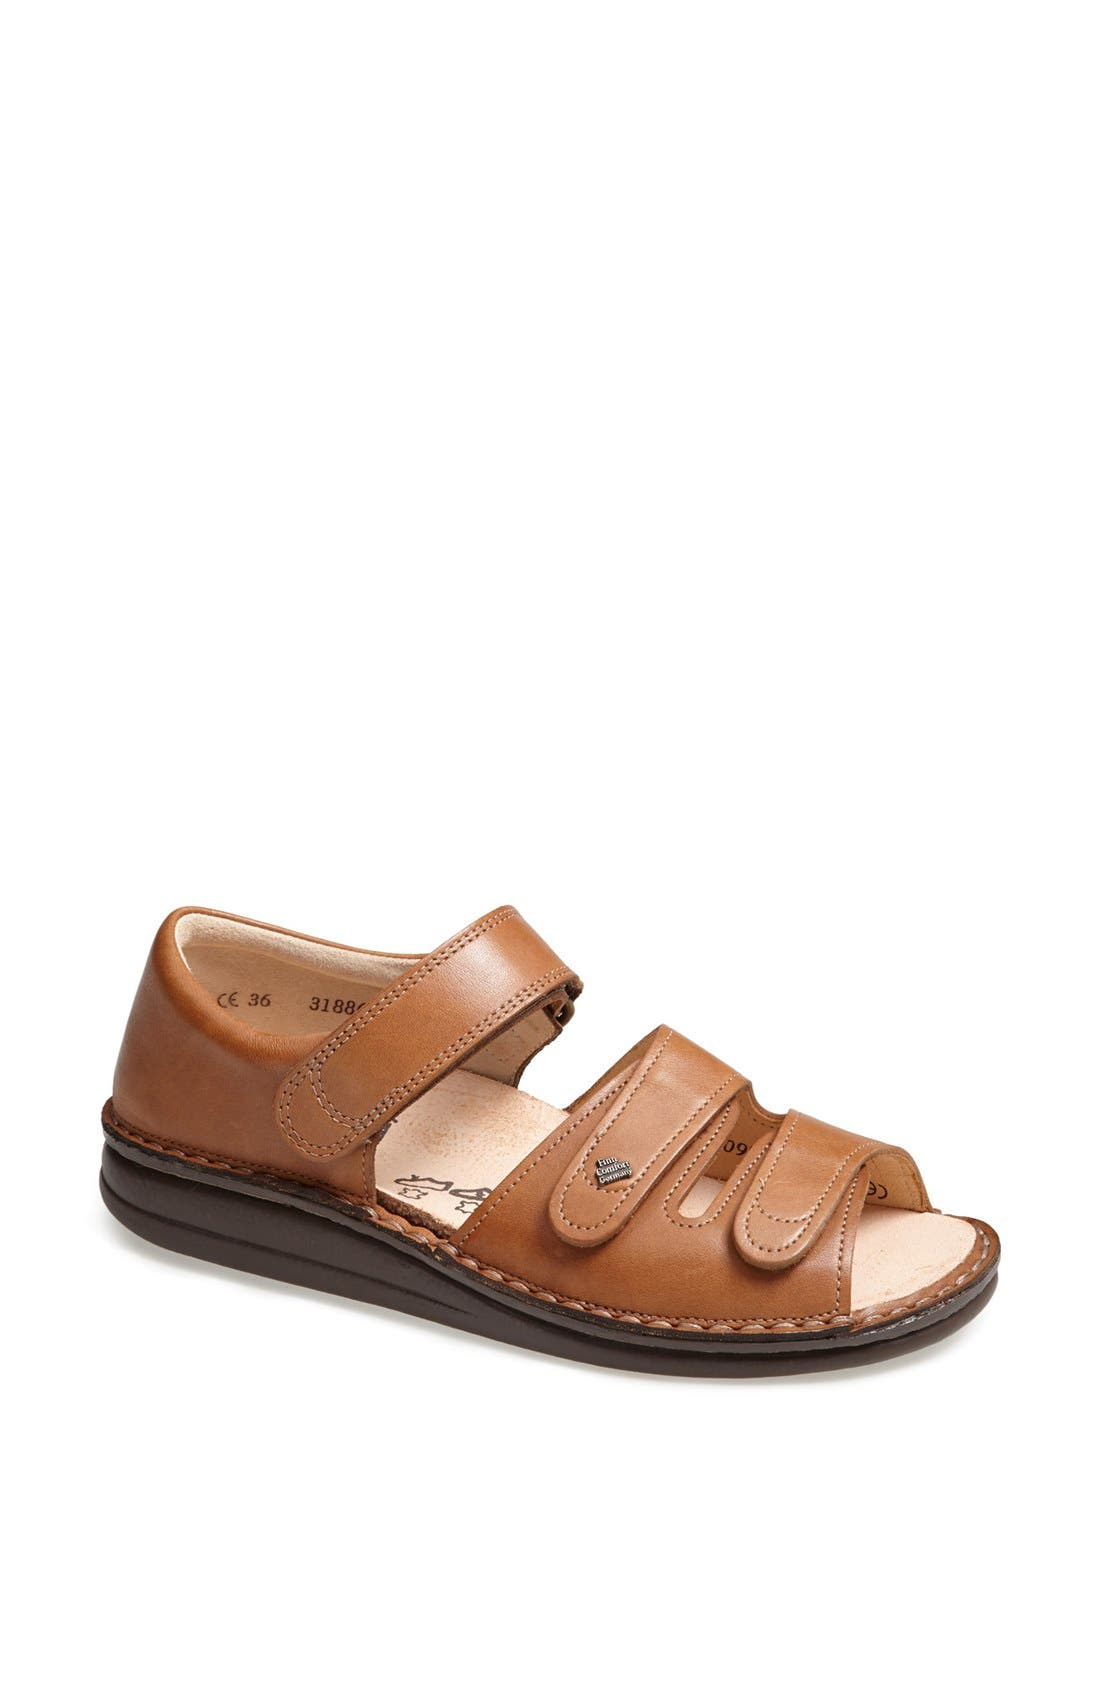 Finn Comfort 'Baltrum 1518' Leather Sandal